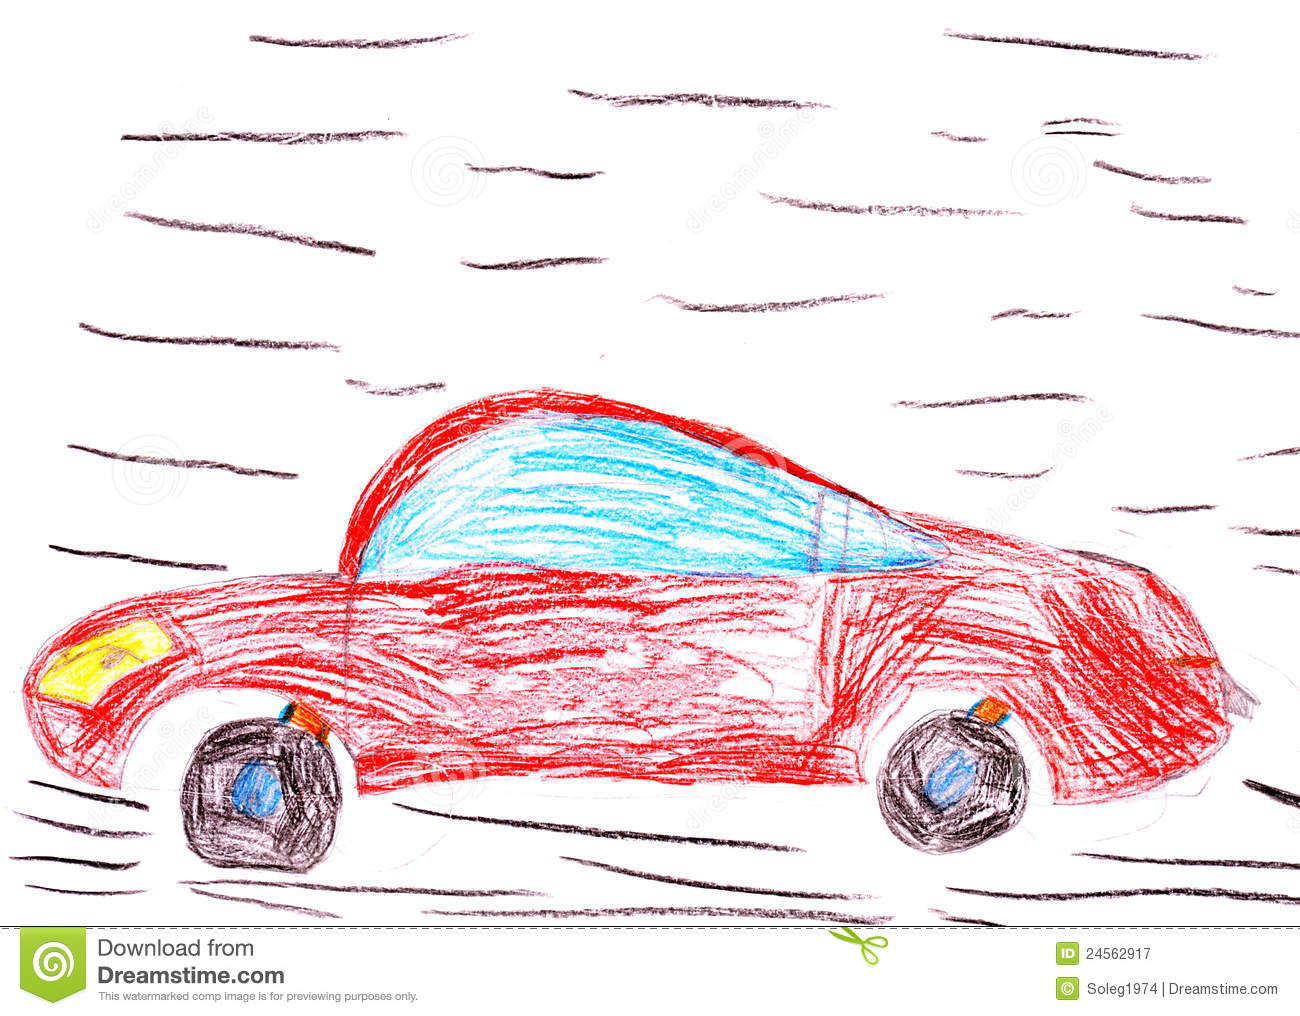 Red Racing Car. Child's Drawing Royalty Free Stock Photography - Image: 24562917